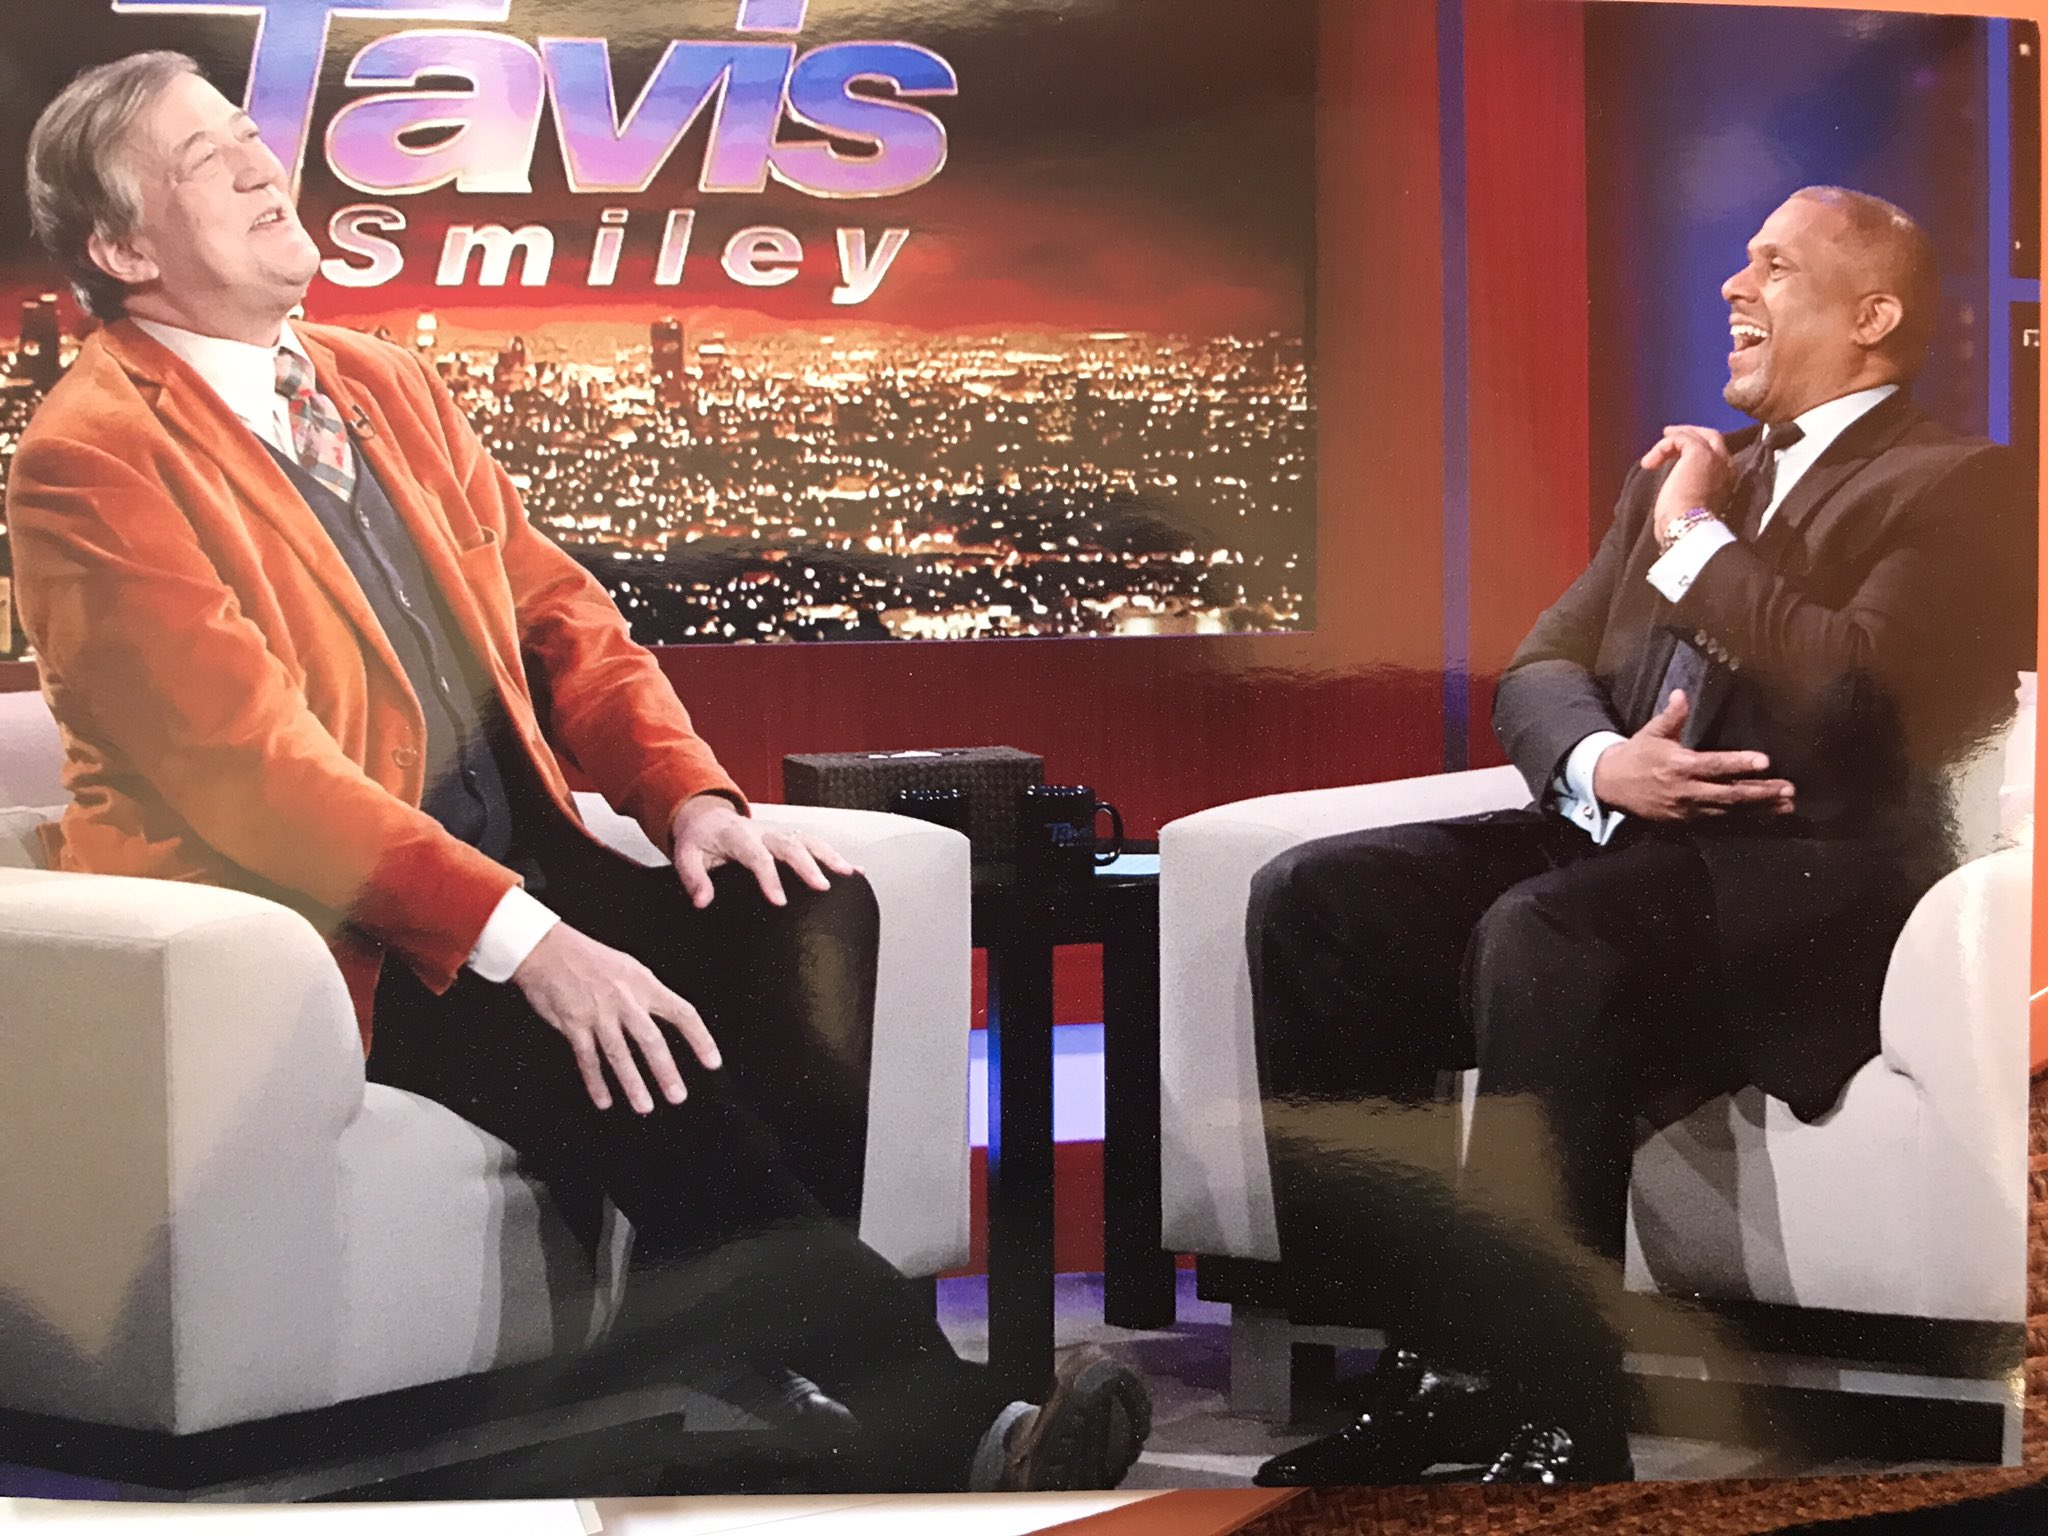 Check out my conversation with @TavisSmiley on his TV show, airing tonight on your local @PBS station. https://t.co/Bg8rnkzEuV